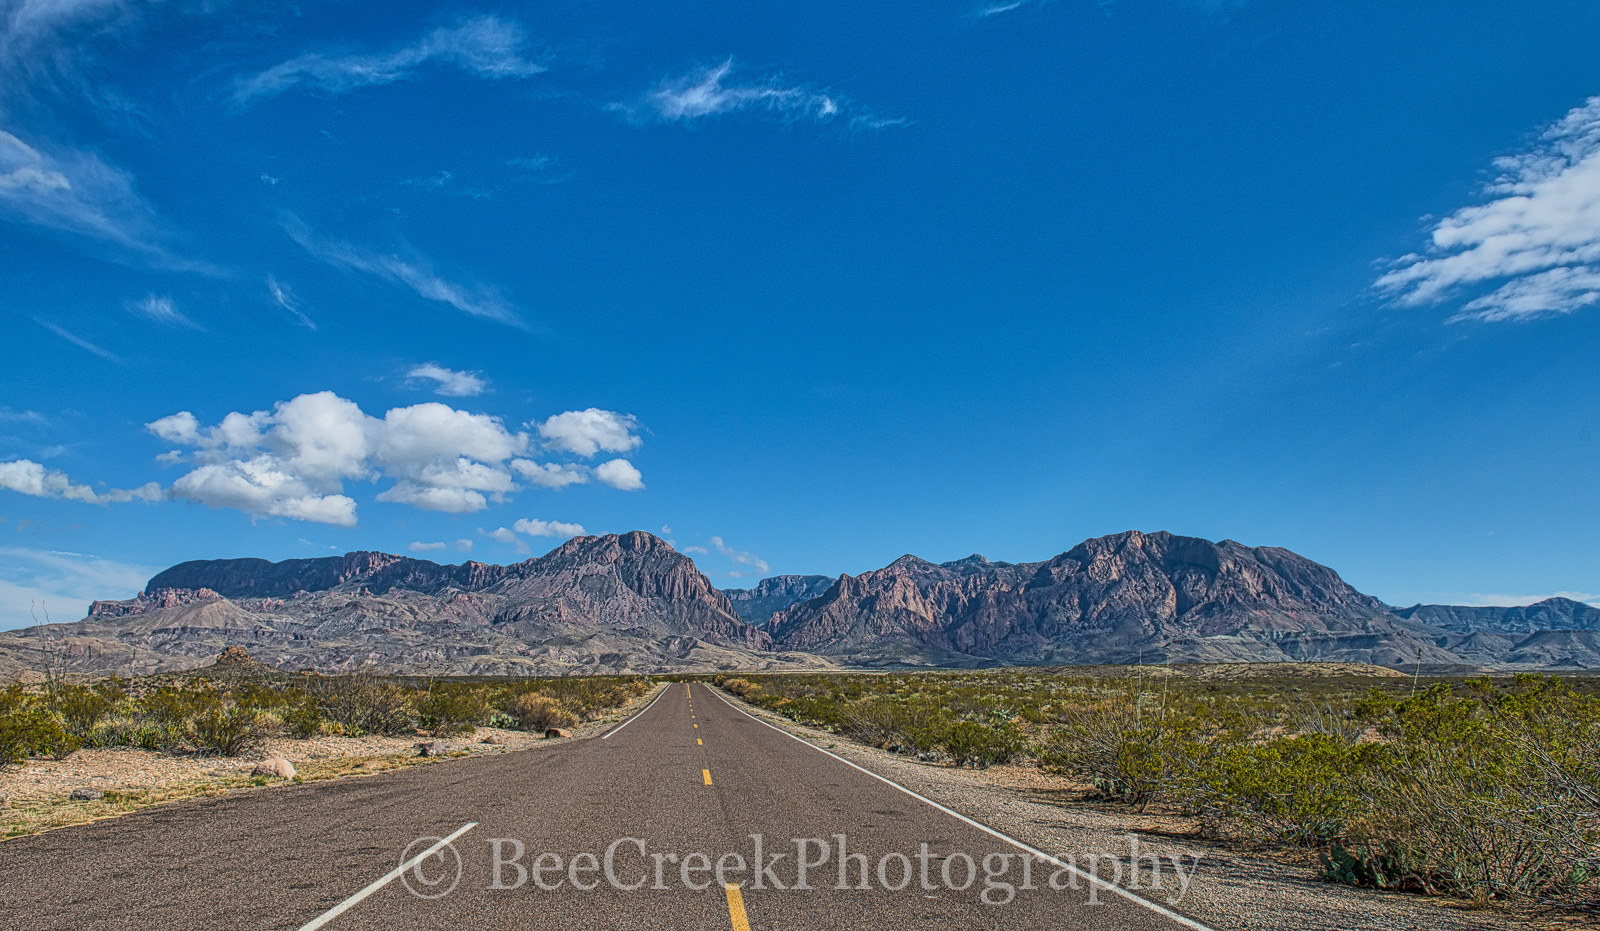 Chiso mountains, Road, big bend, blue sky, clouds, landscape, ross maxwell Scenic Drive, window view, desert landscape, big bend national park, , photo